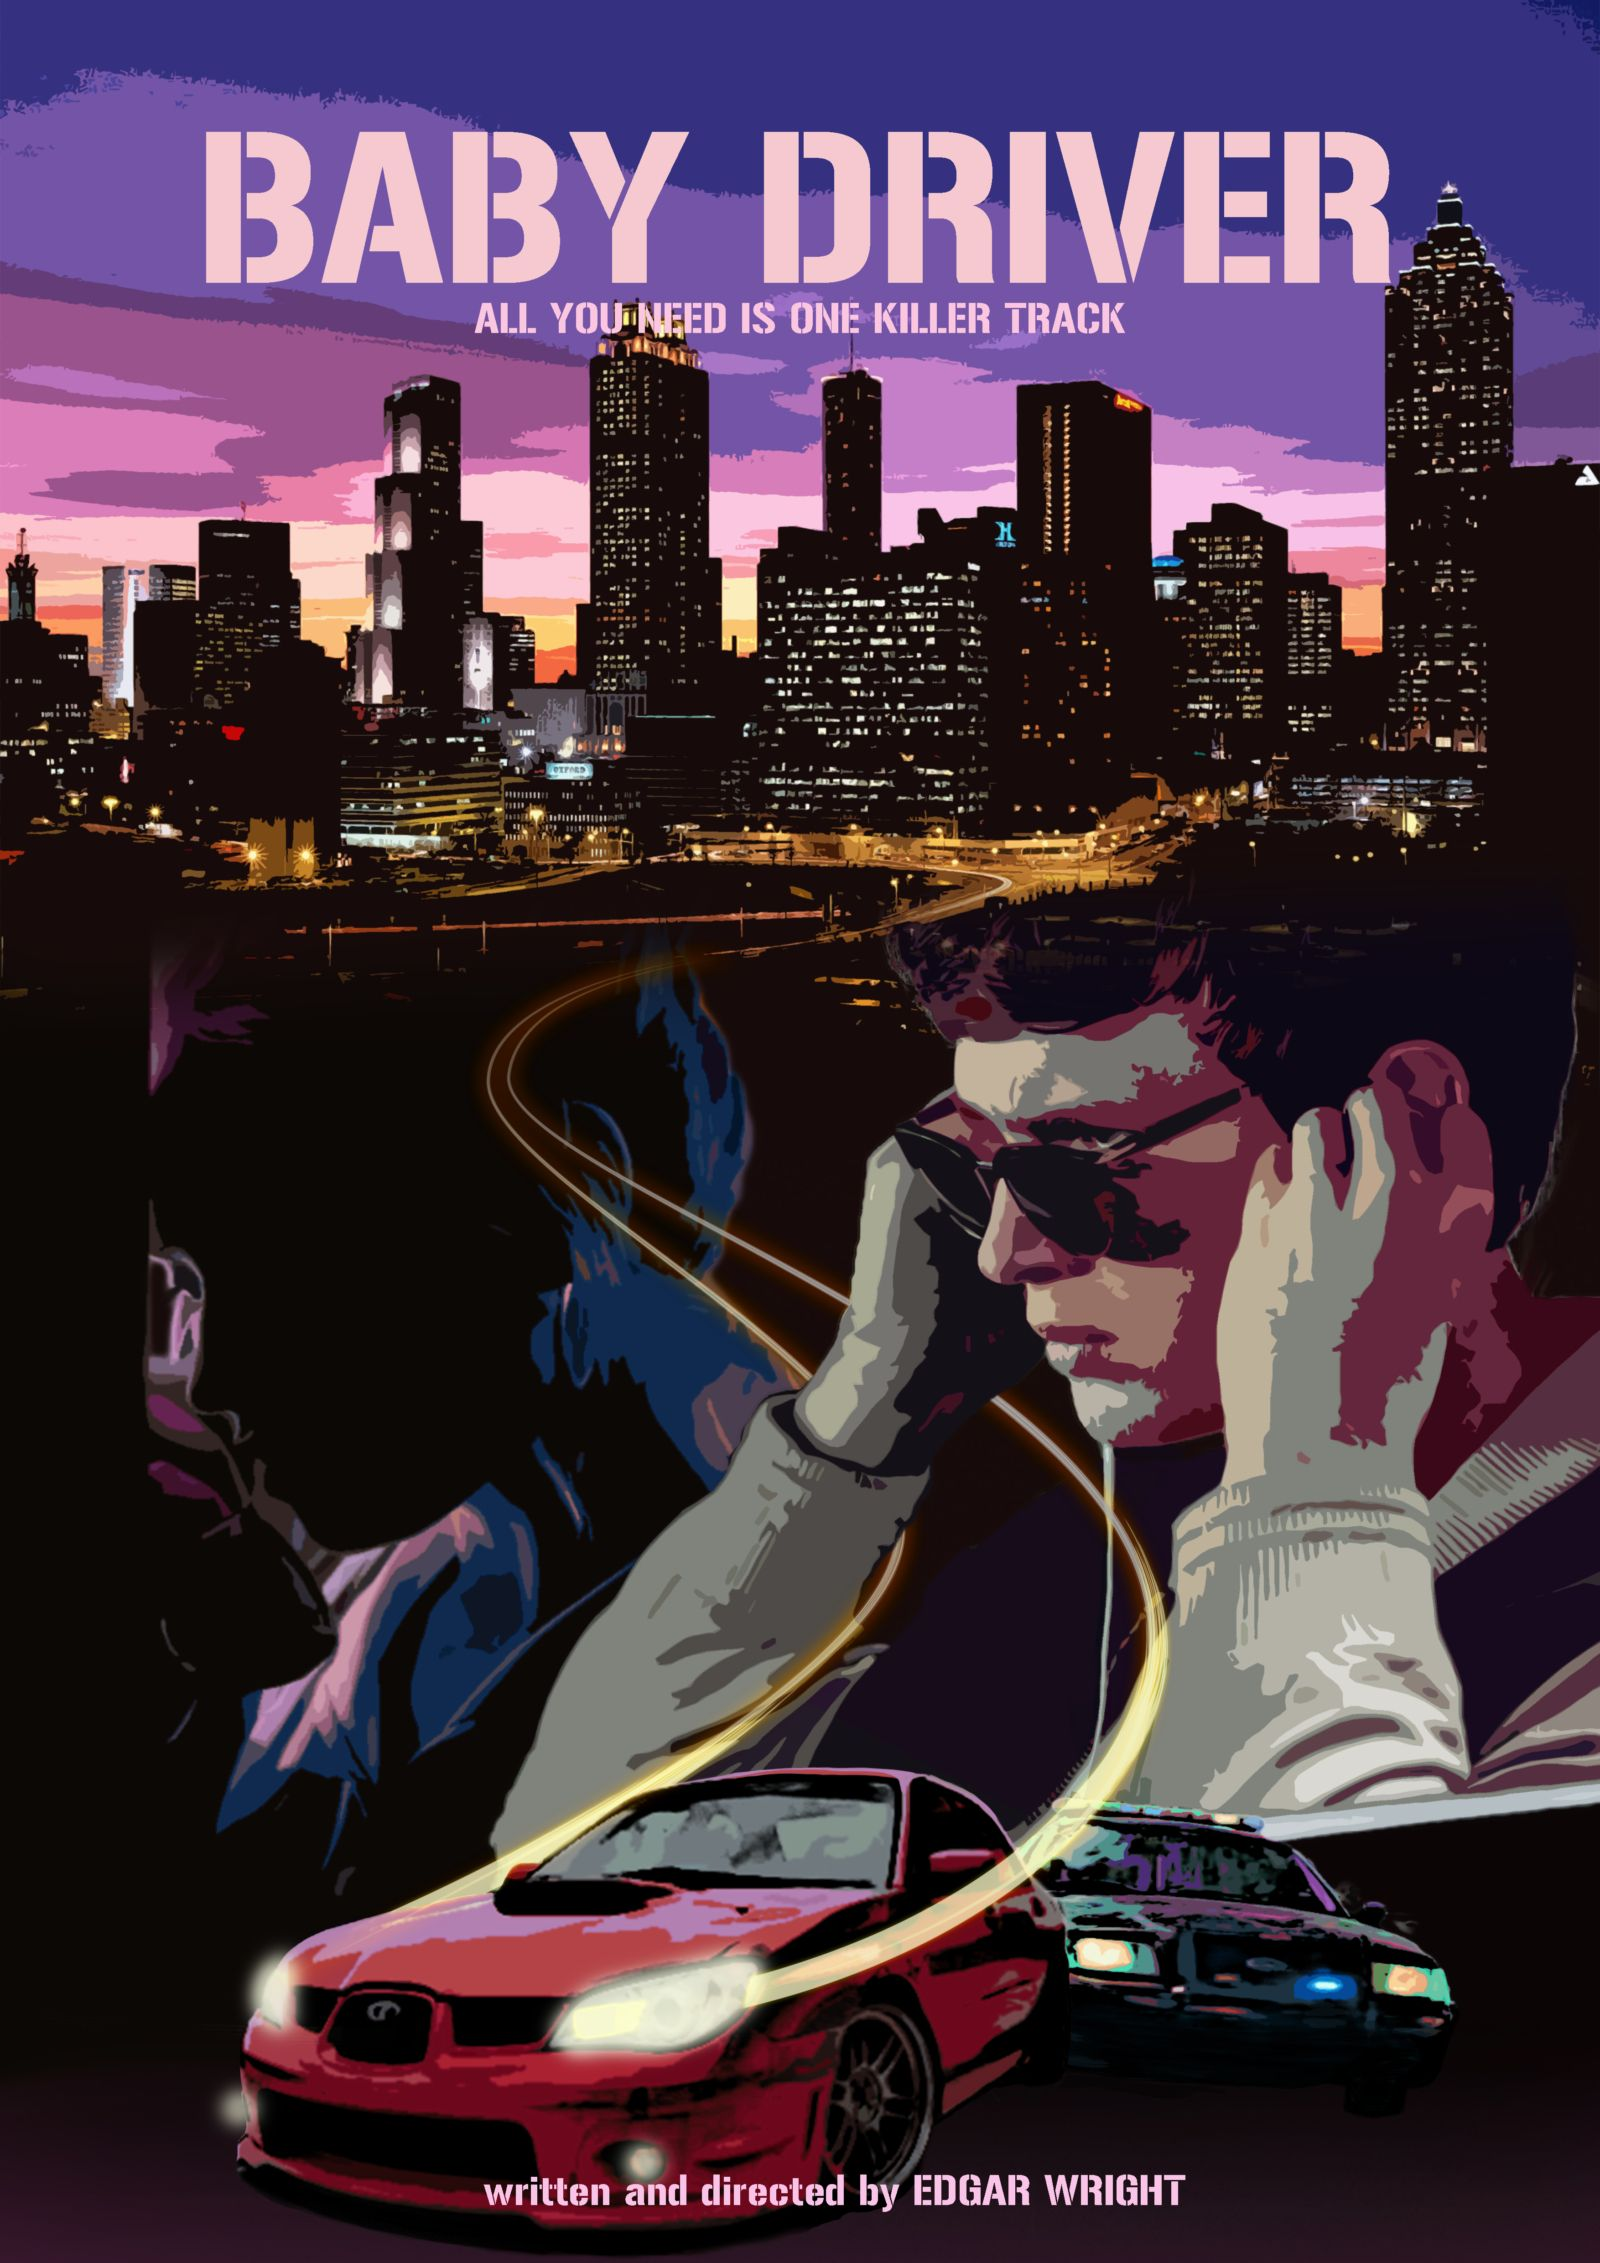 baby driver 2017 2017 baby driver movie posters baby rh pinterest com baby driver car we can't afford